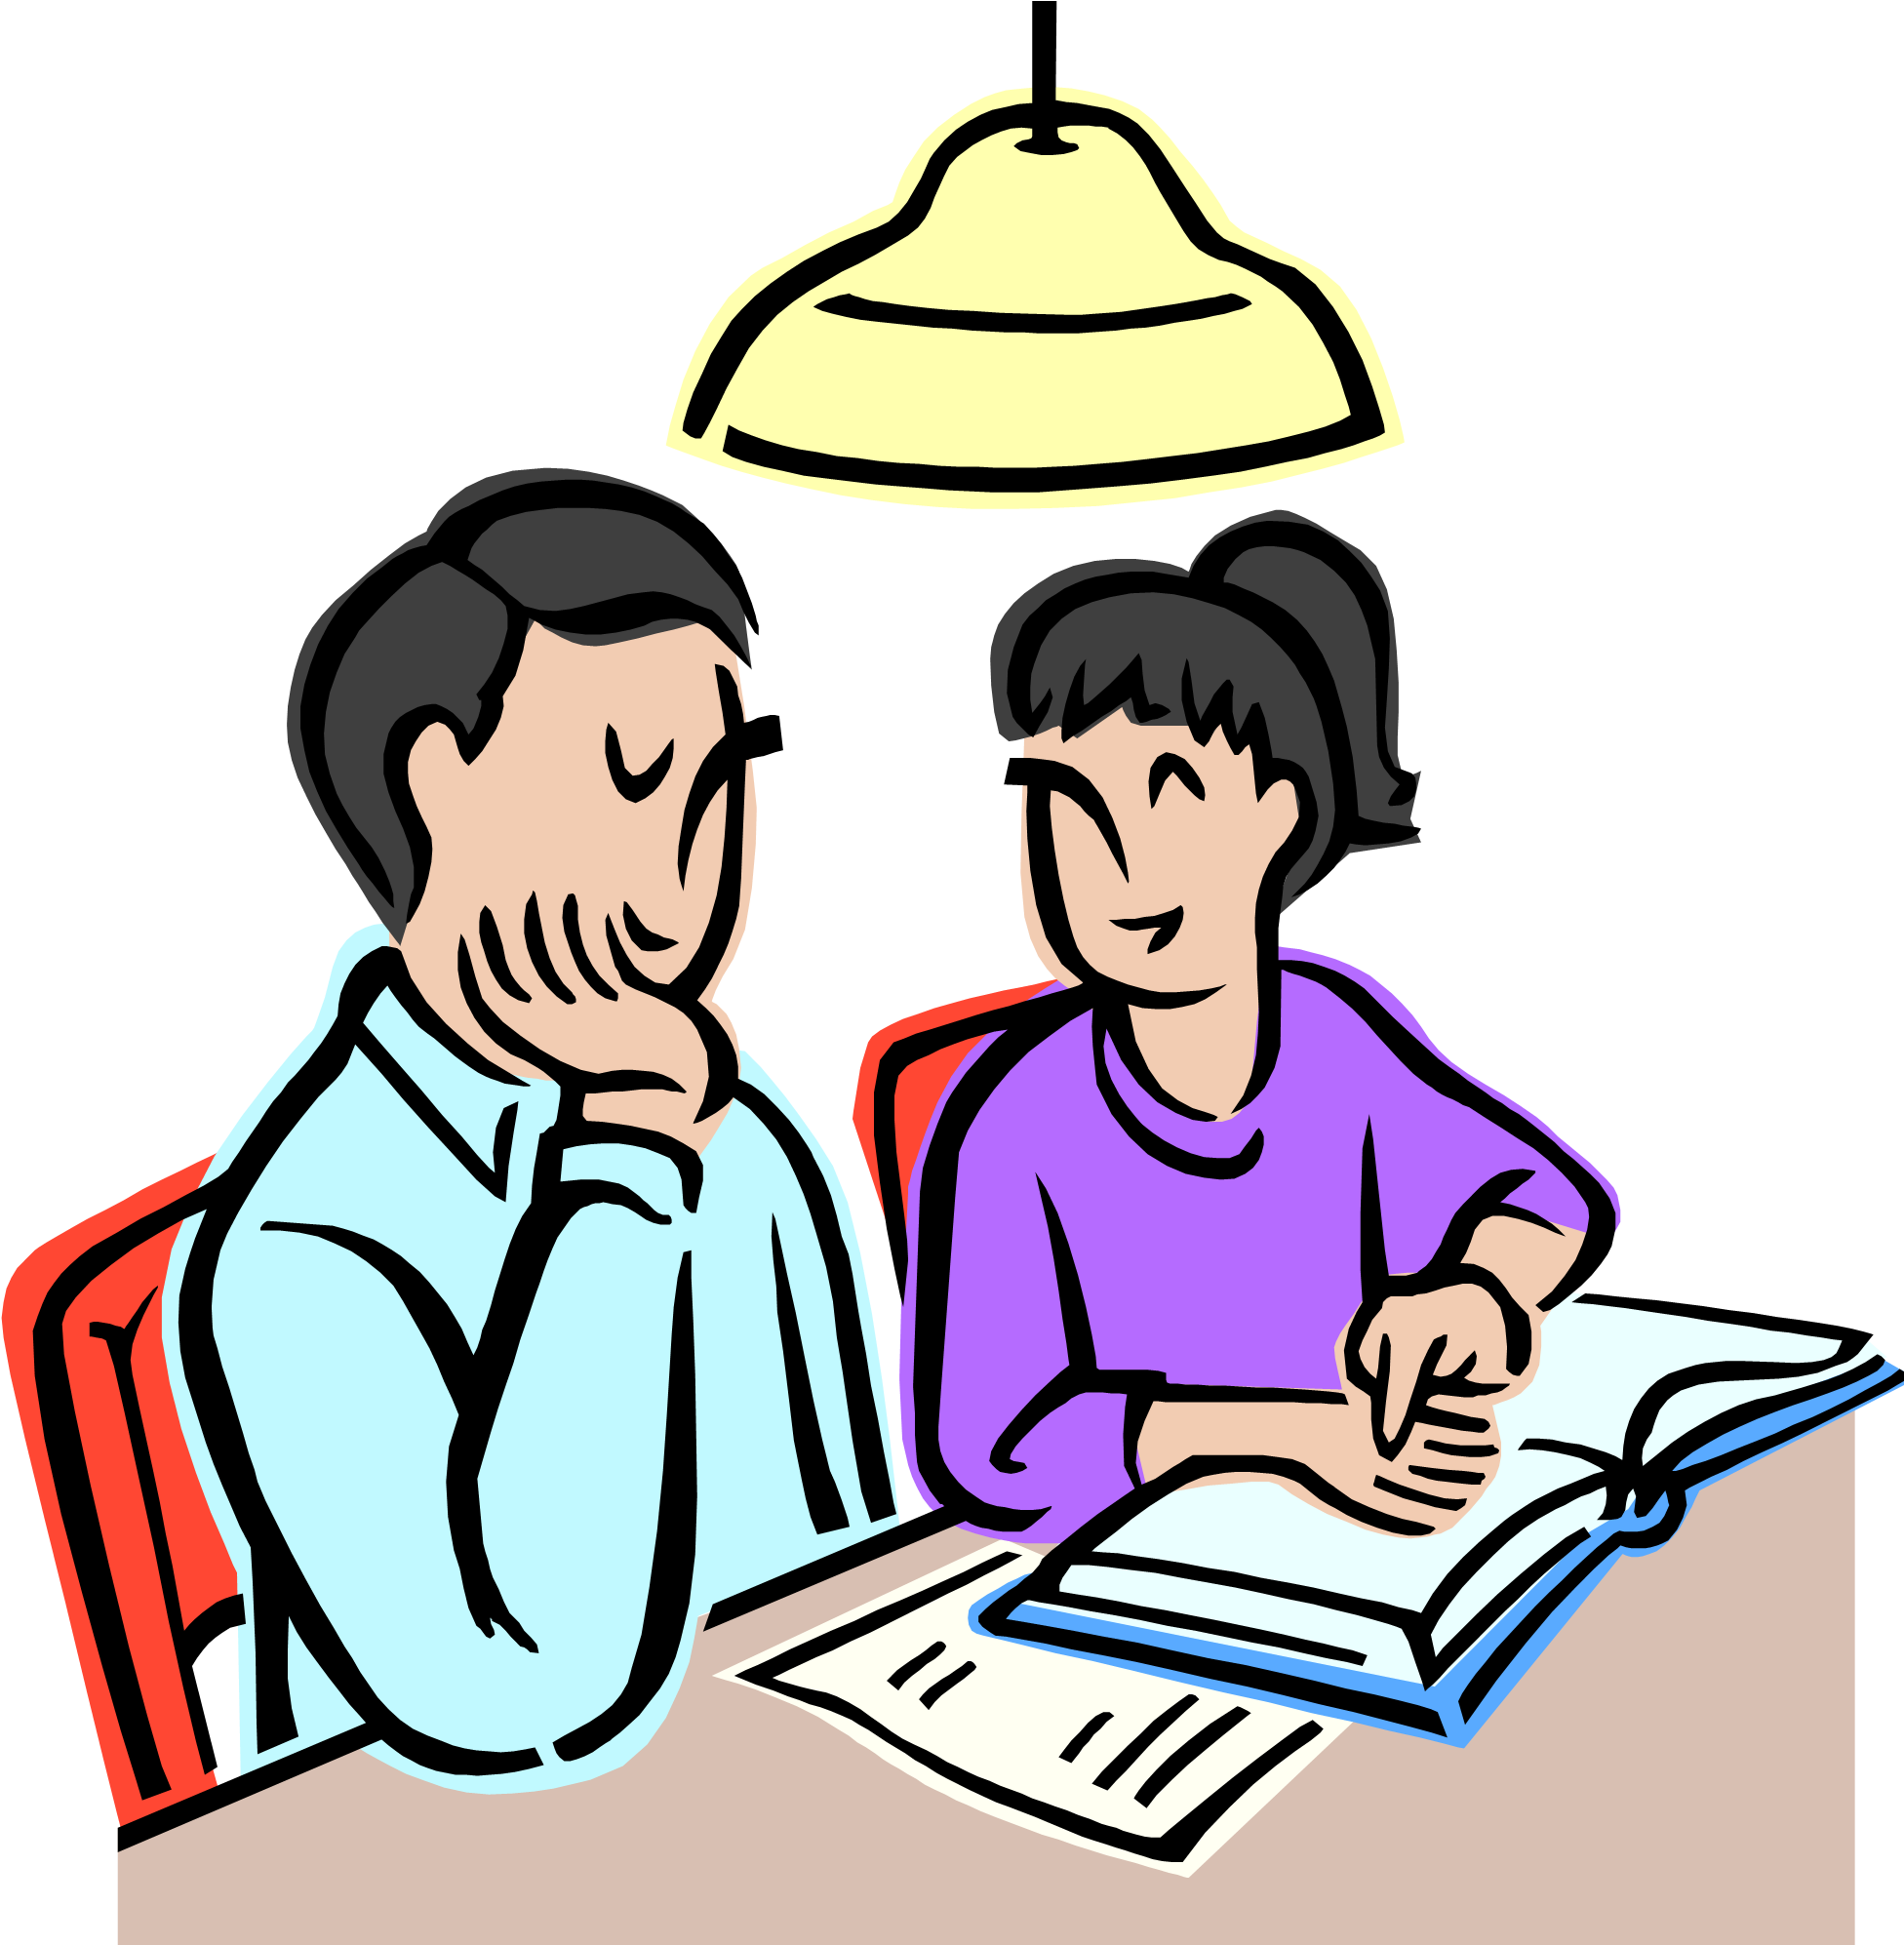 Homework Clip Art For Kids Free Clipart Images 2 - Help With Homework (1964x1993)